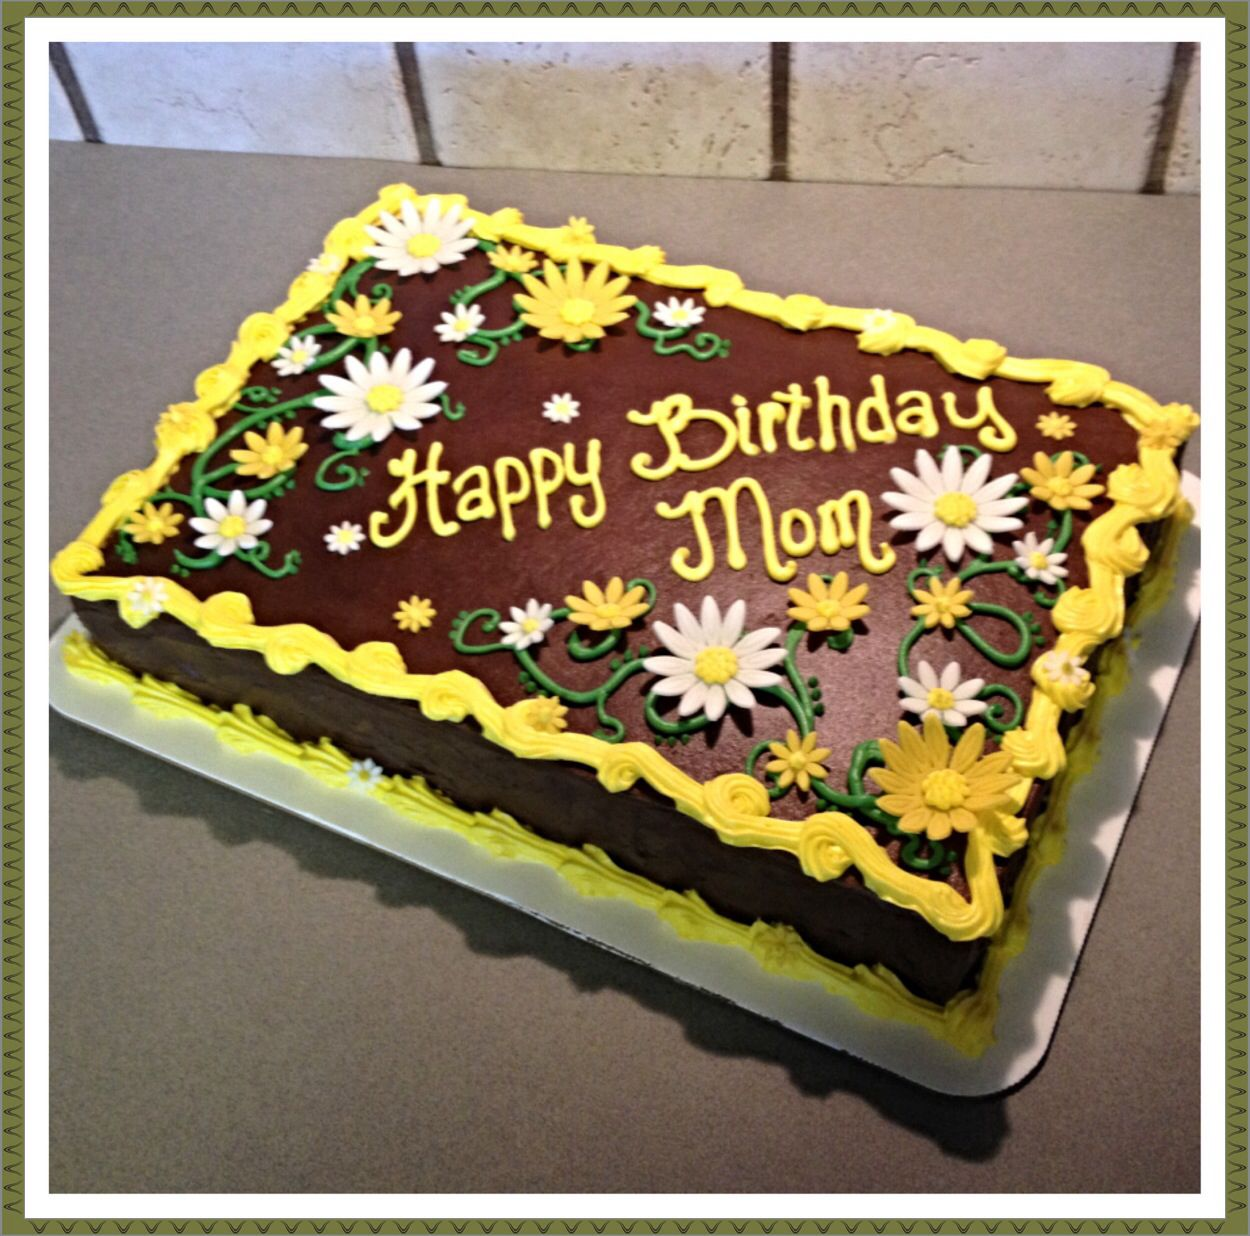 Chocolate Cake With Daisies For A Special Mom Birthday Sheet